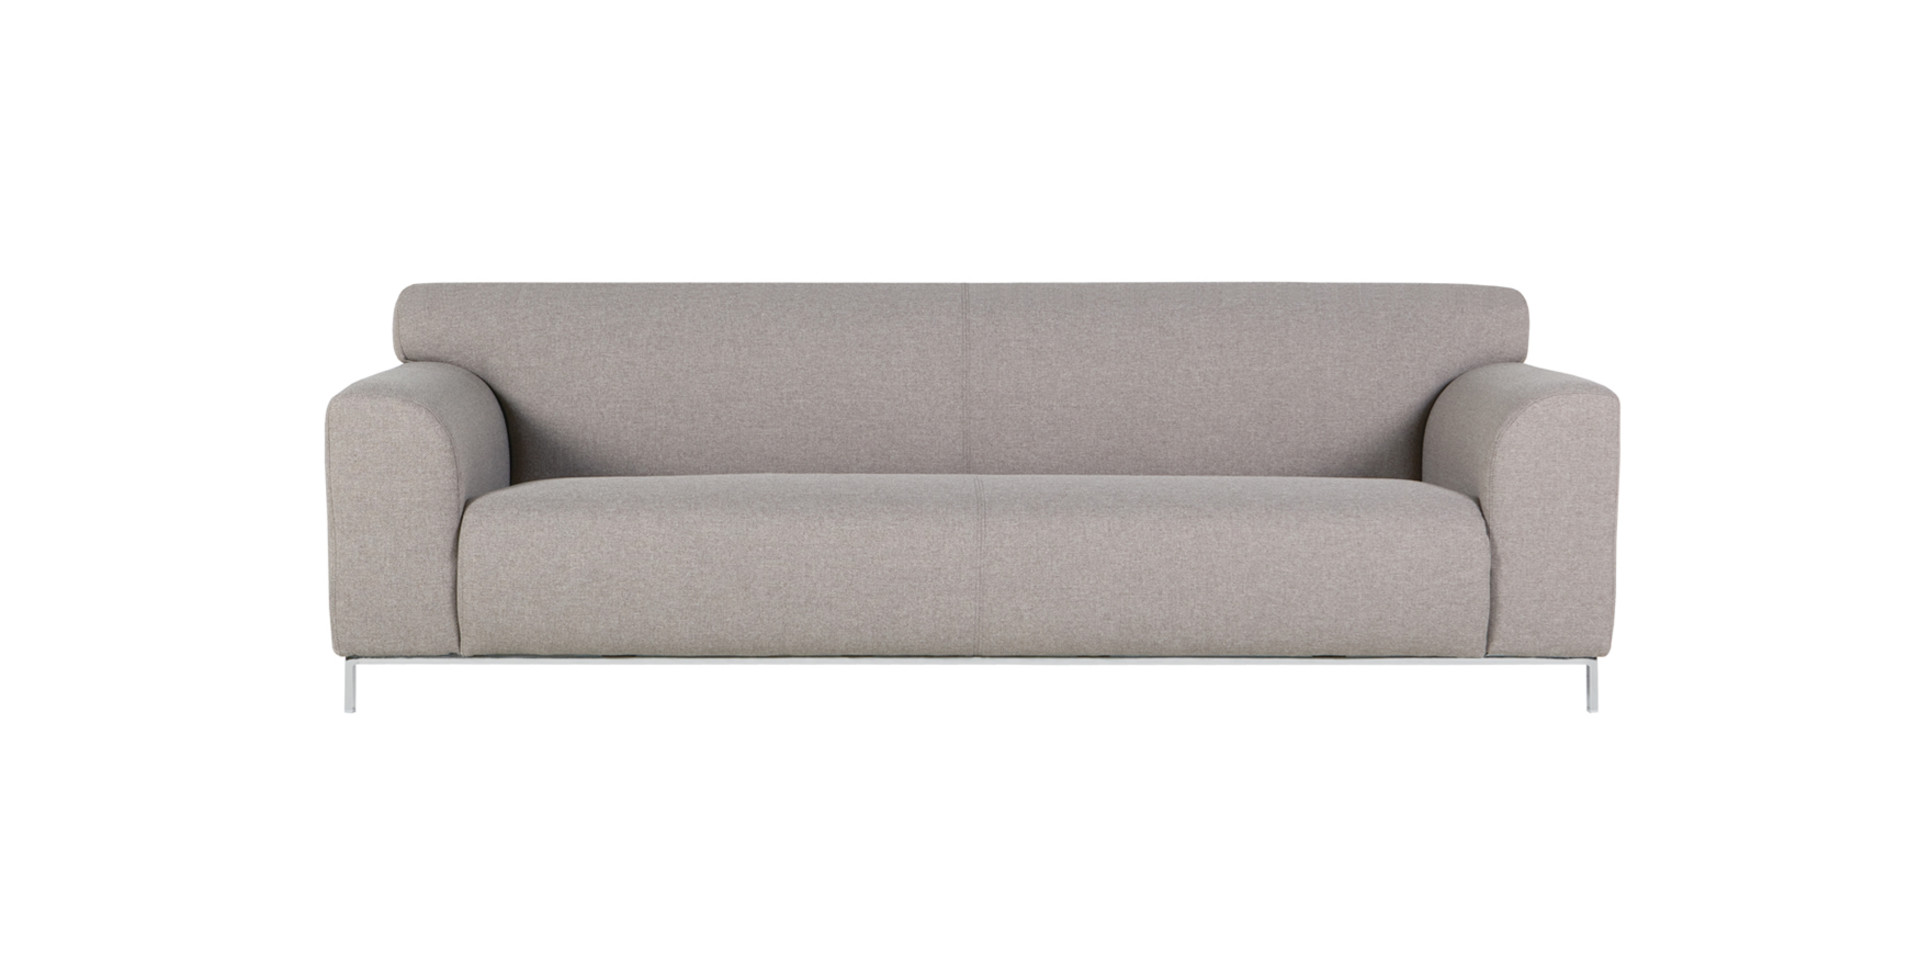 sits-rosa-canape-3seater_sony2_beige_1